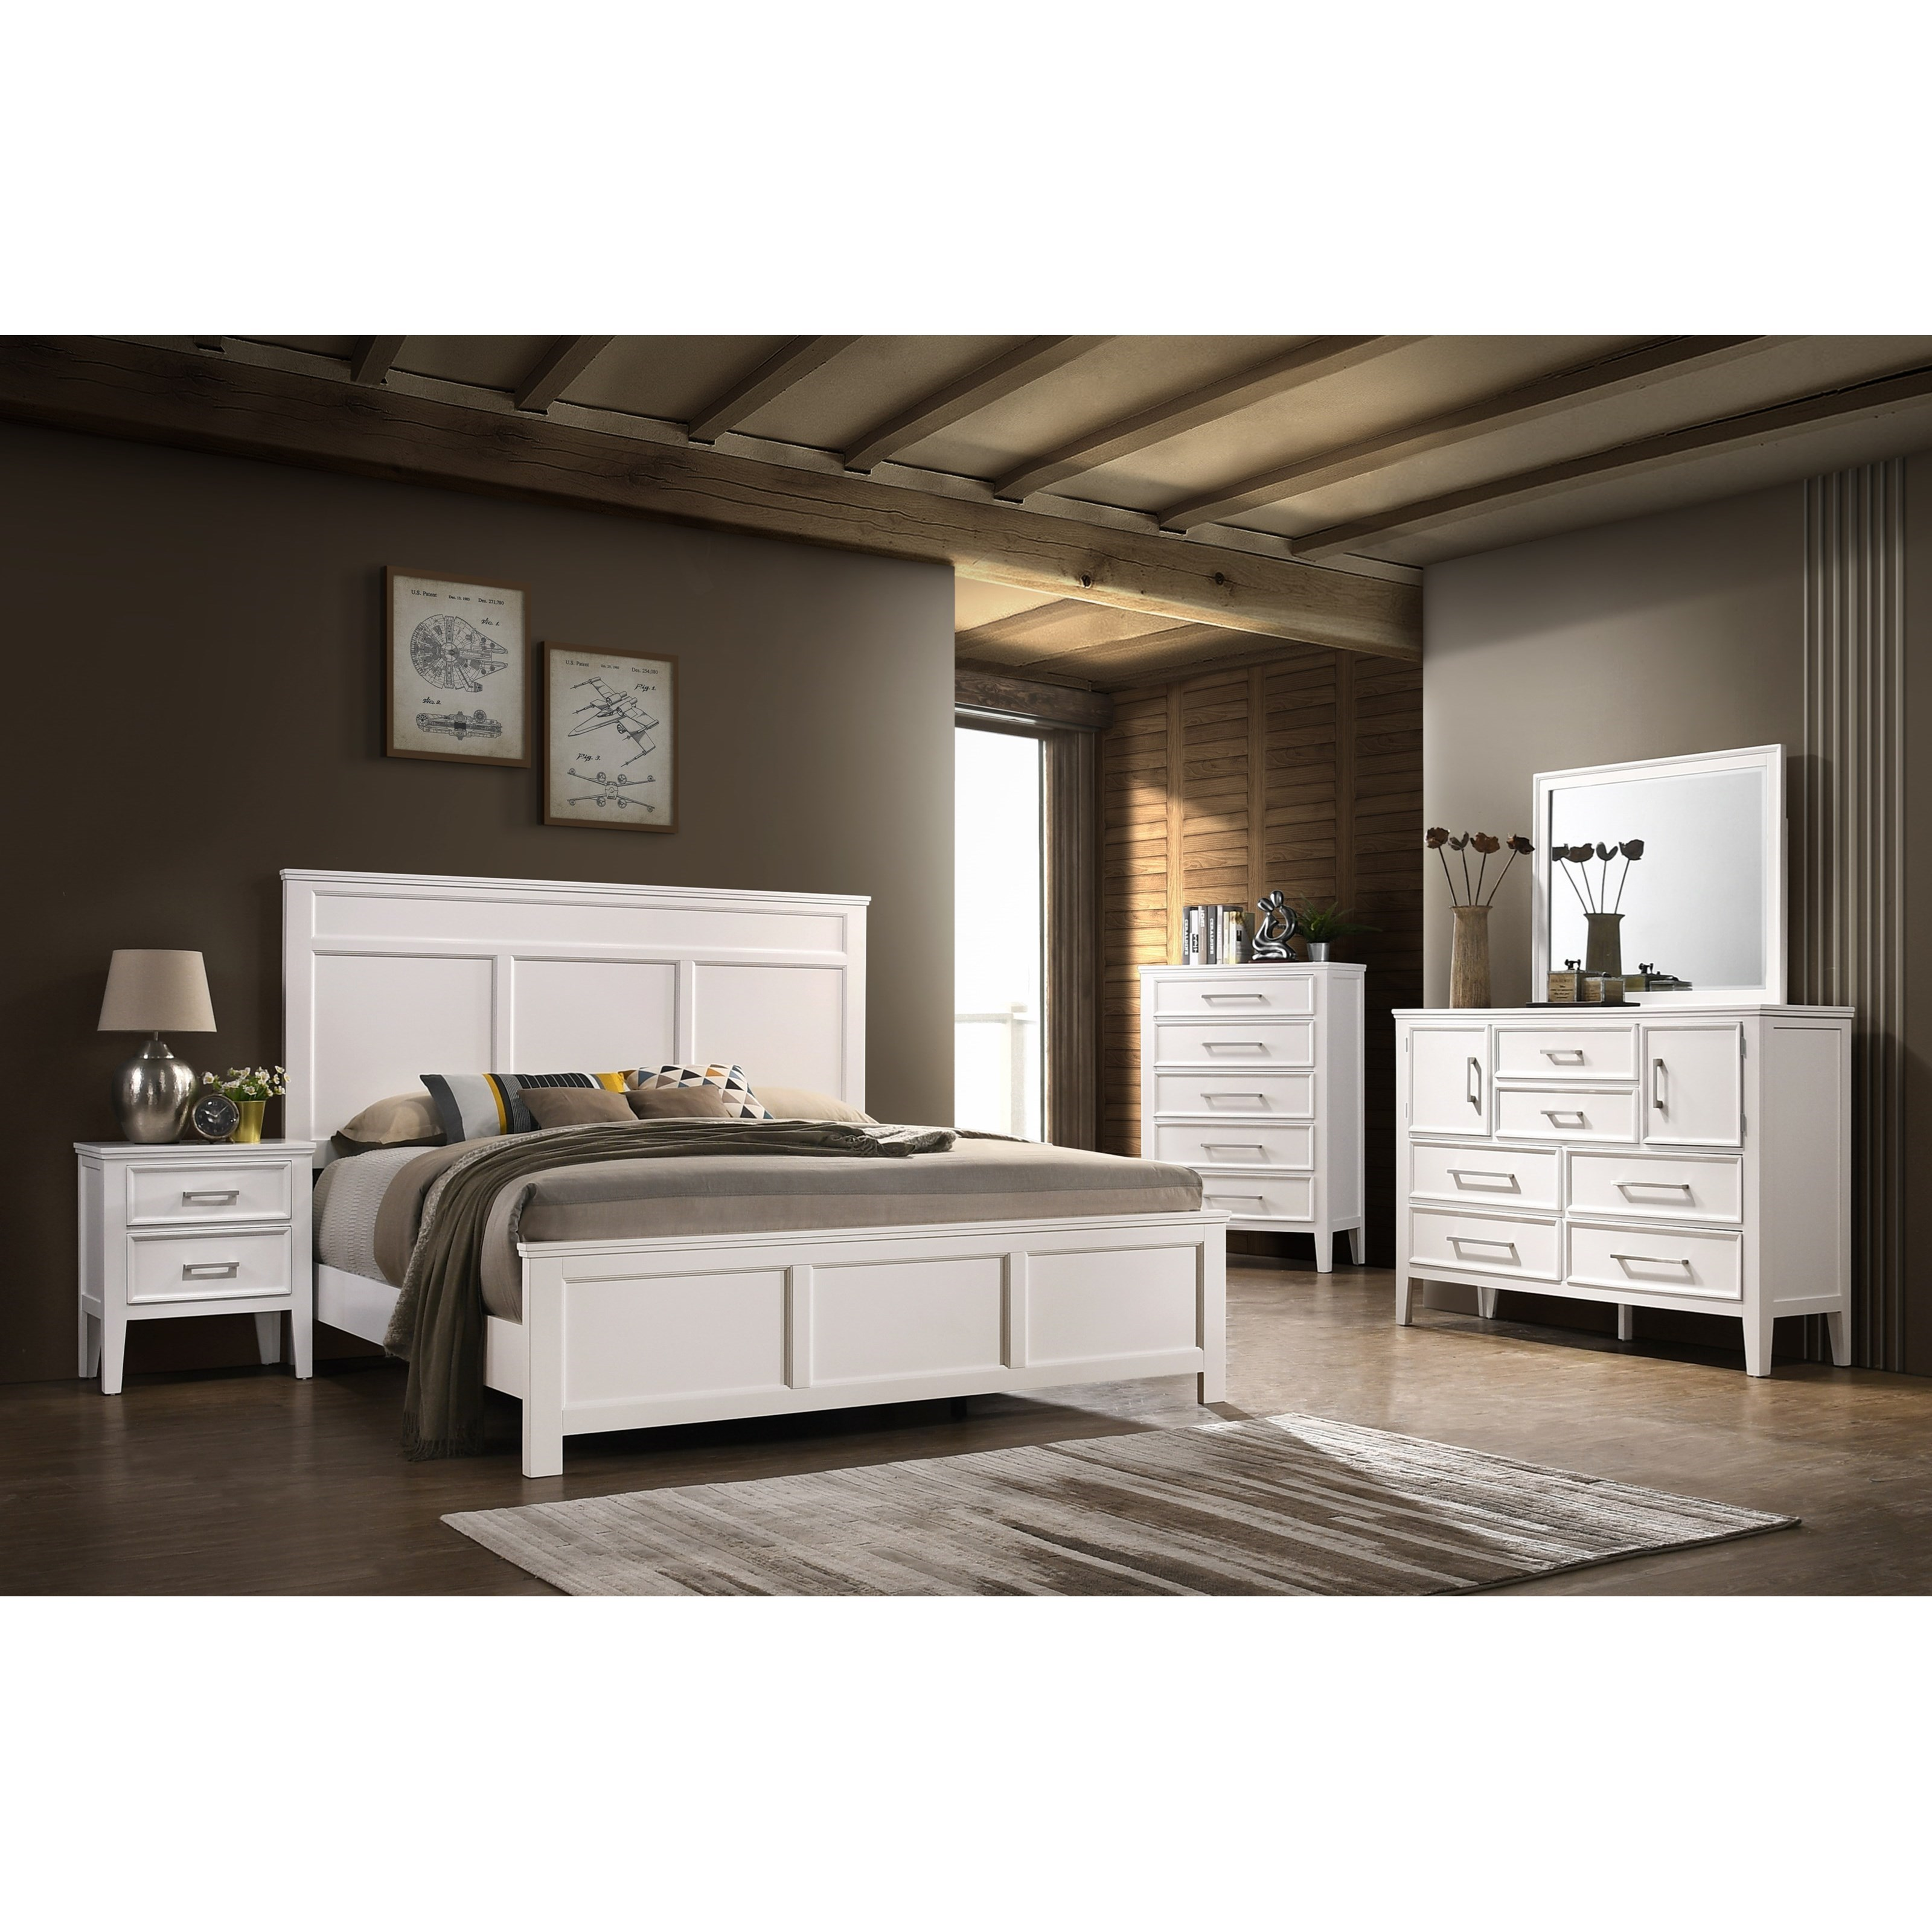 Andover Twin Bedroom Group by New Classic at Beds N Stuff